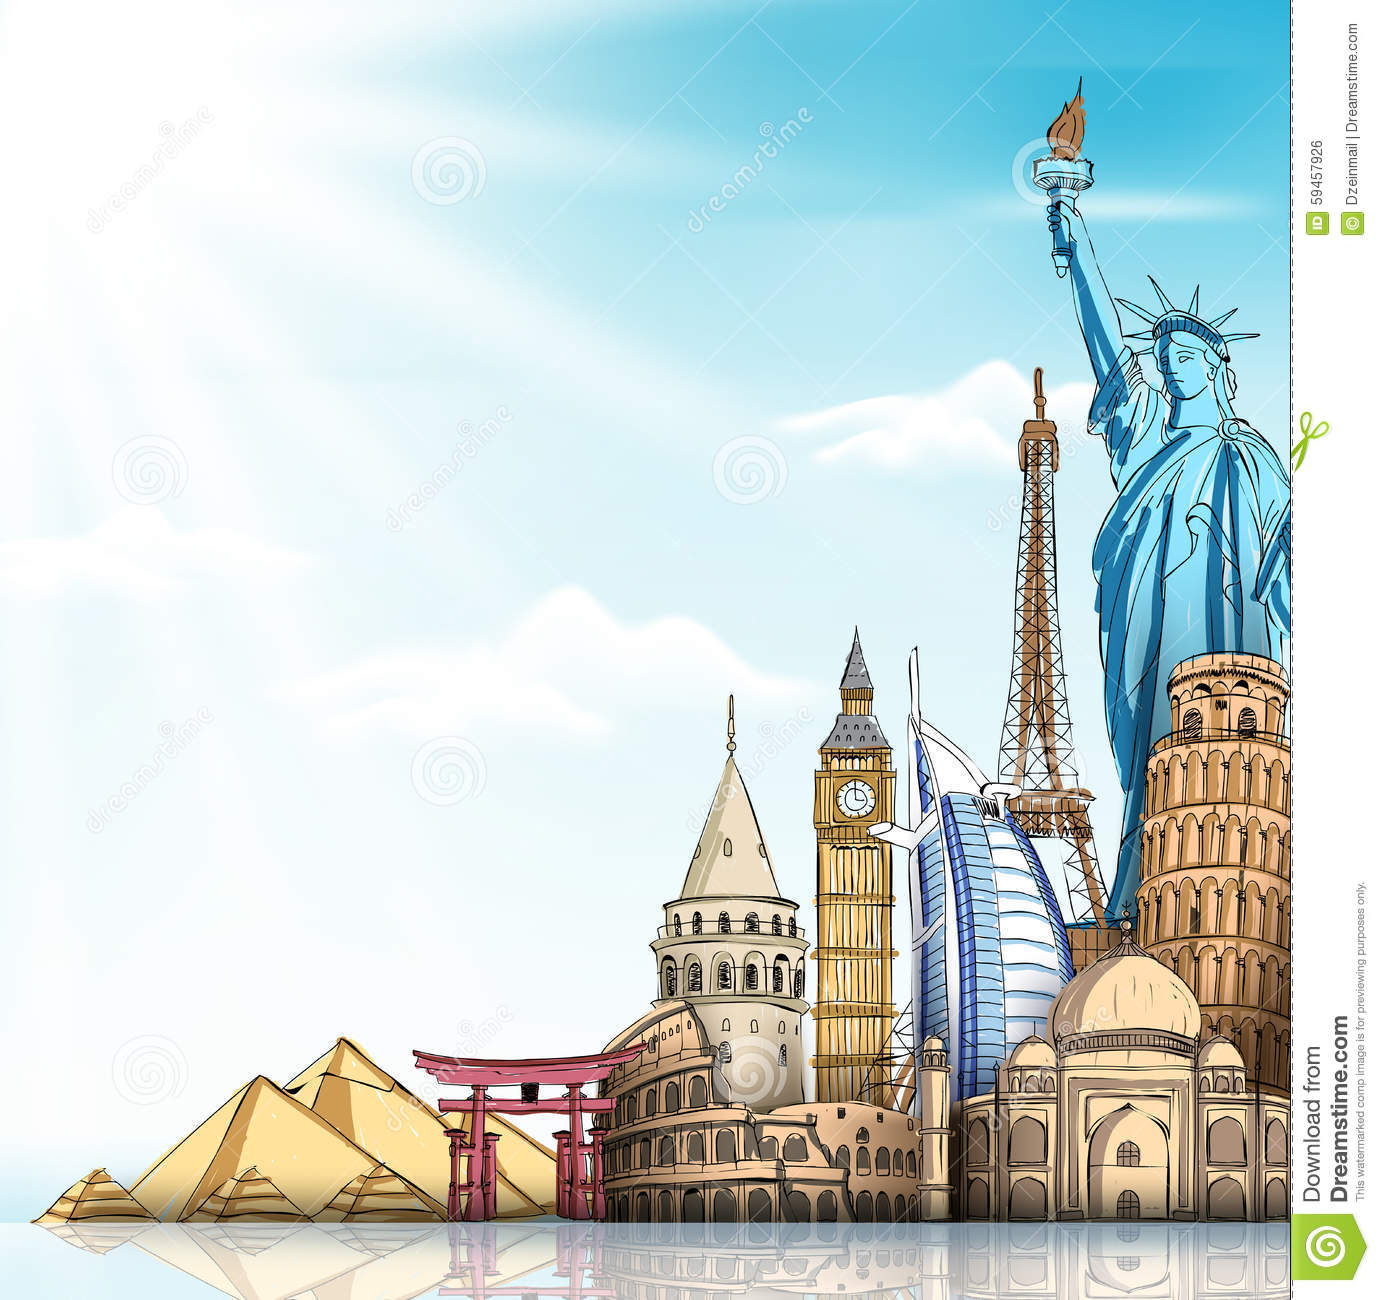 travel-tourism-background-famous-world-landmarks-d-realistic-sketch-drawing-elements-vector-illustration-59457926.jpg